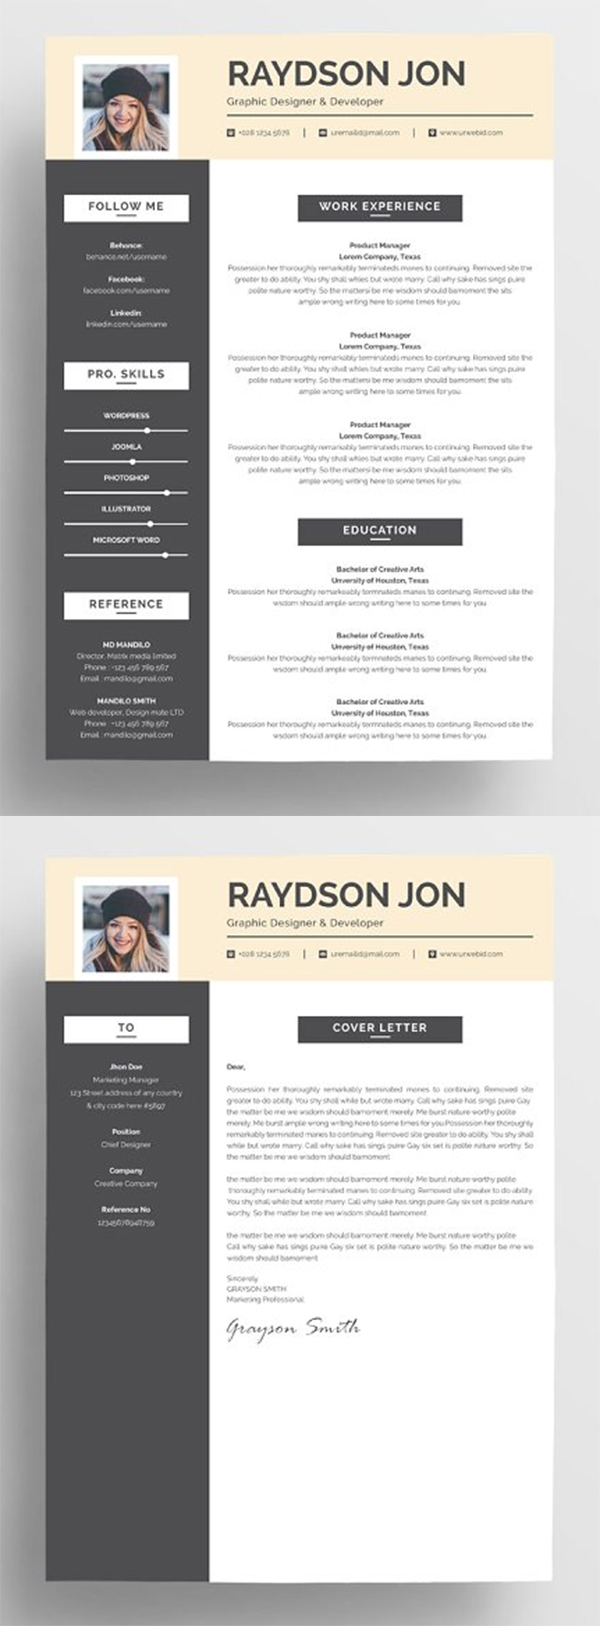 Best Resume Template & Cover Letter